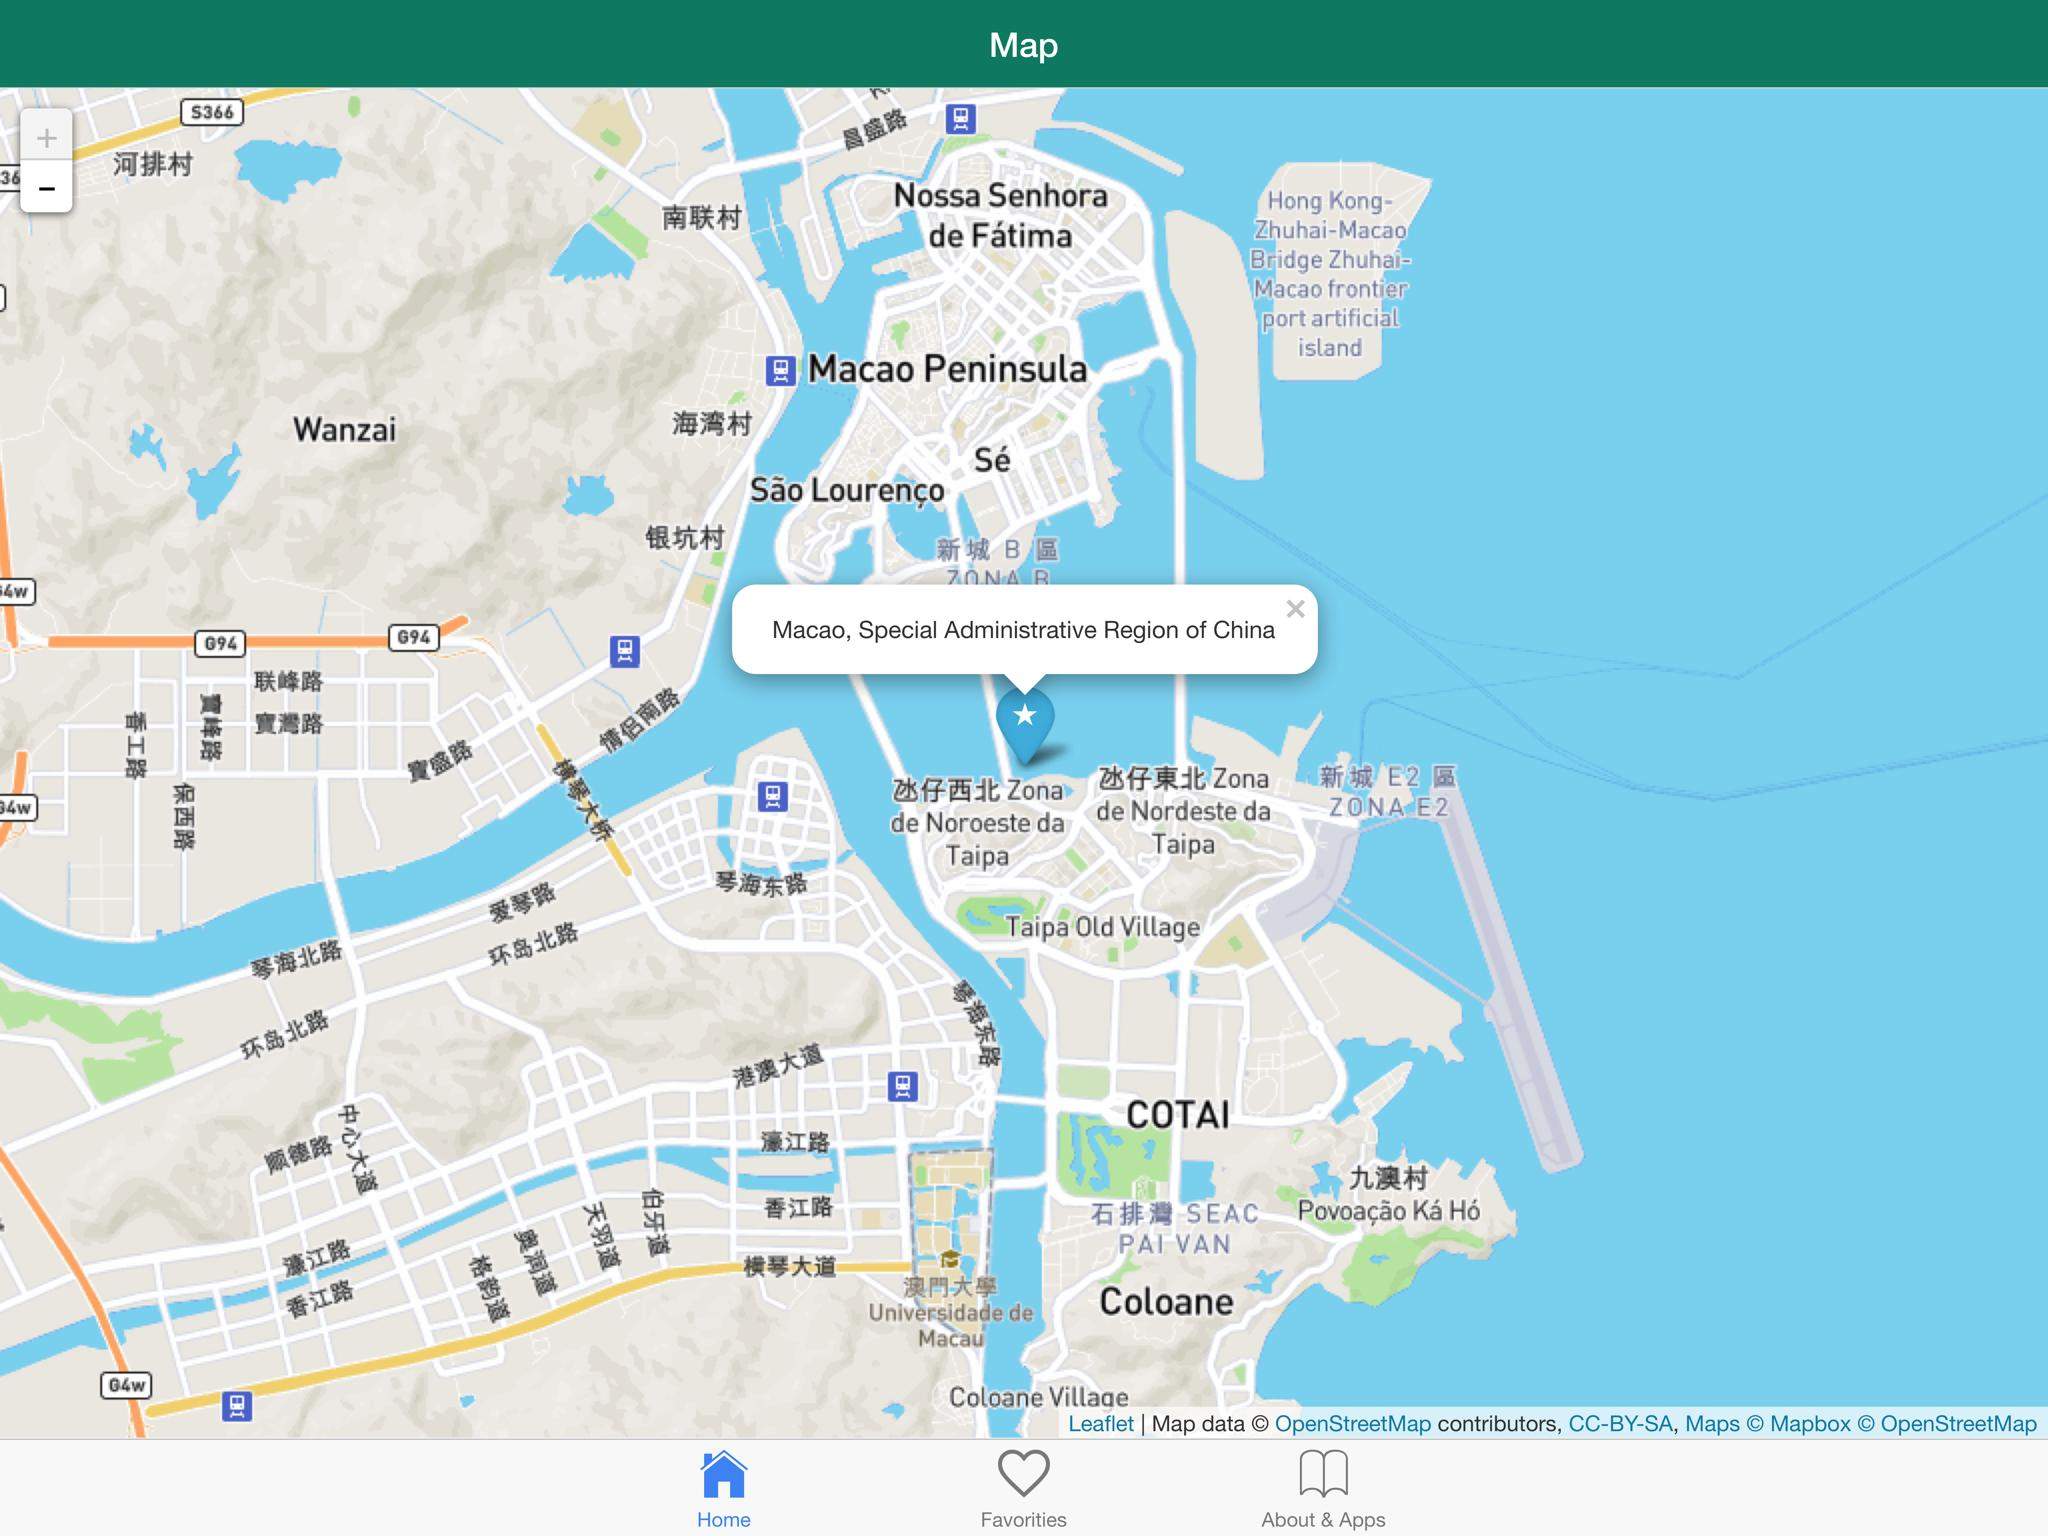 Macau Macao offline map for Android - APK Download on print maps, advertising maps, service maps, facebook maps, online interactive maps,